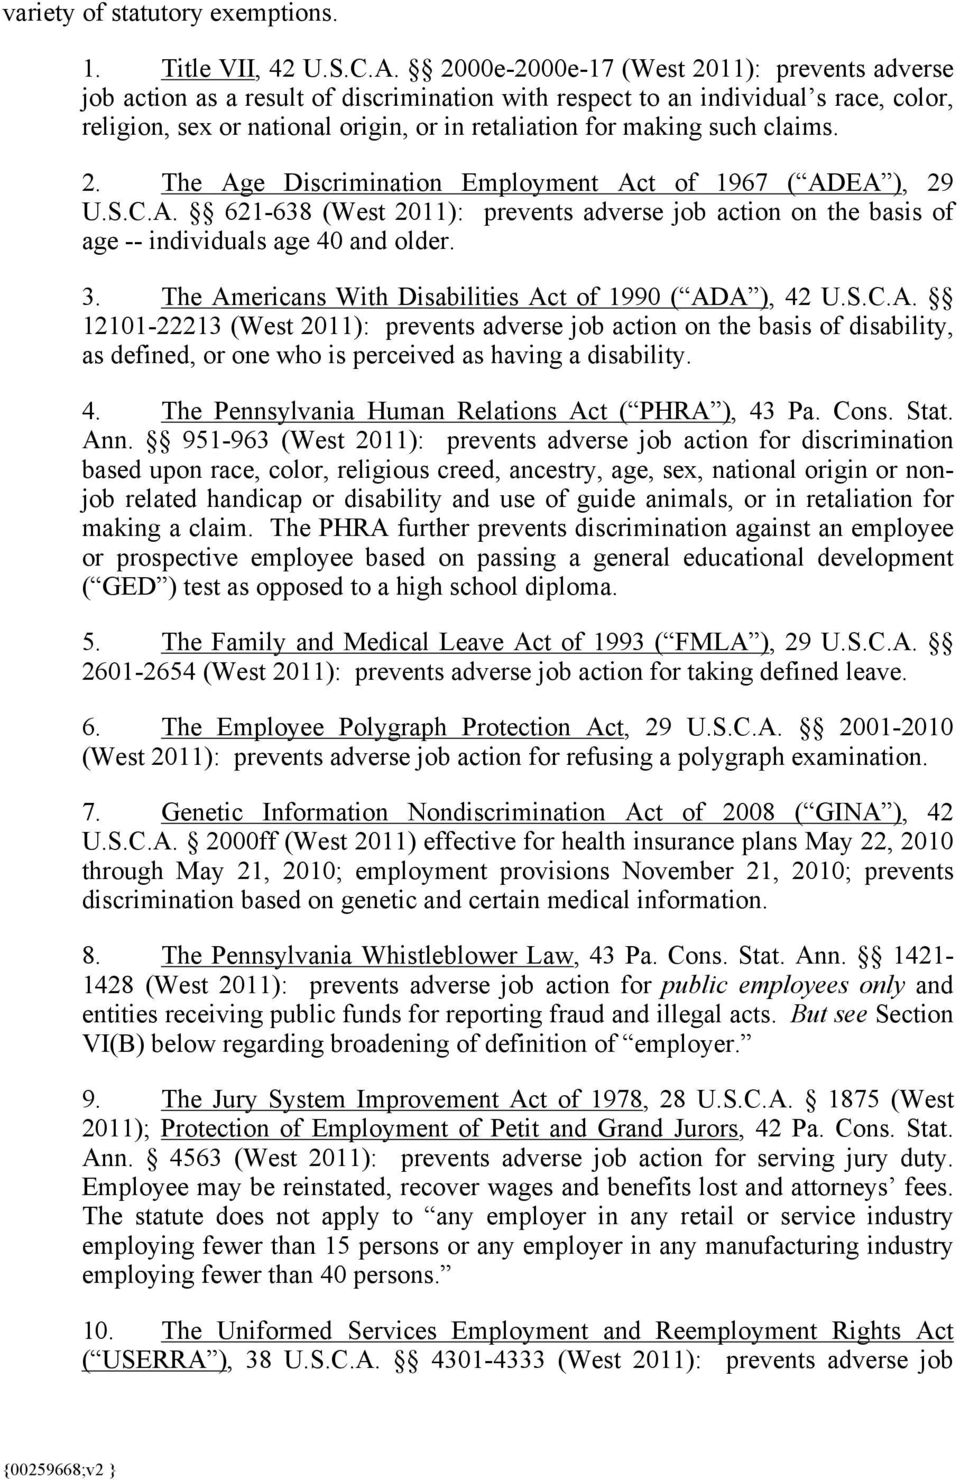 claims. 2. The Age Discrimination Employment Act of 1967 ( ADEA ), 29 U.S.C.A. 621-638 (West 2011): prevents adverse job action on the basis of age -- individuals age 40 and older. 3.